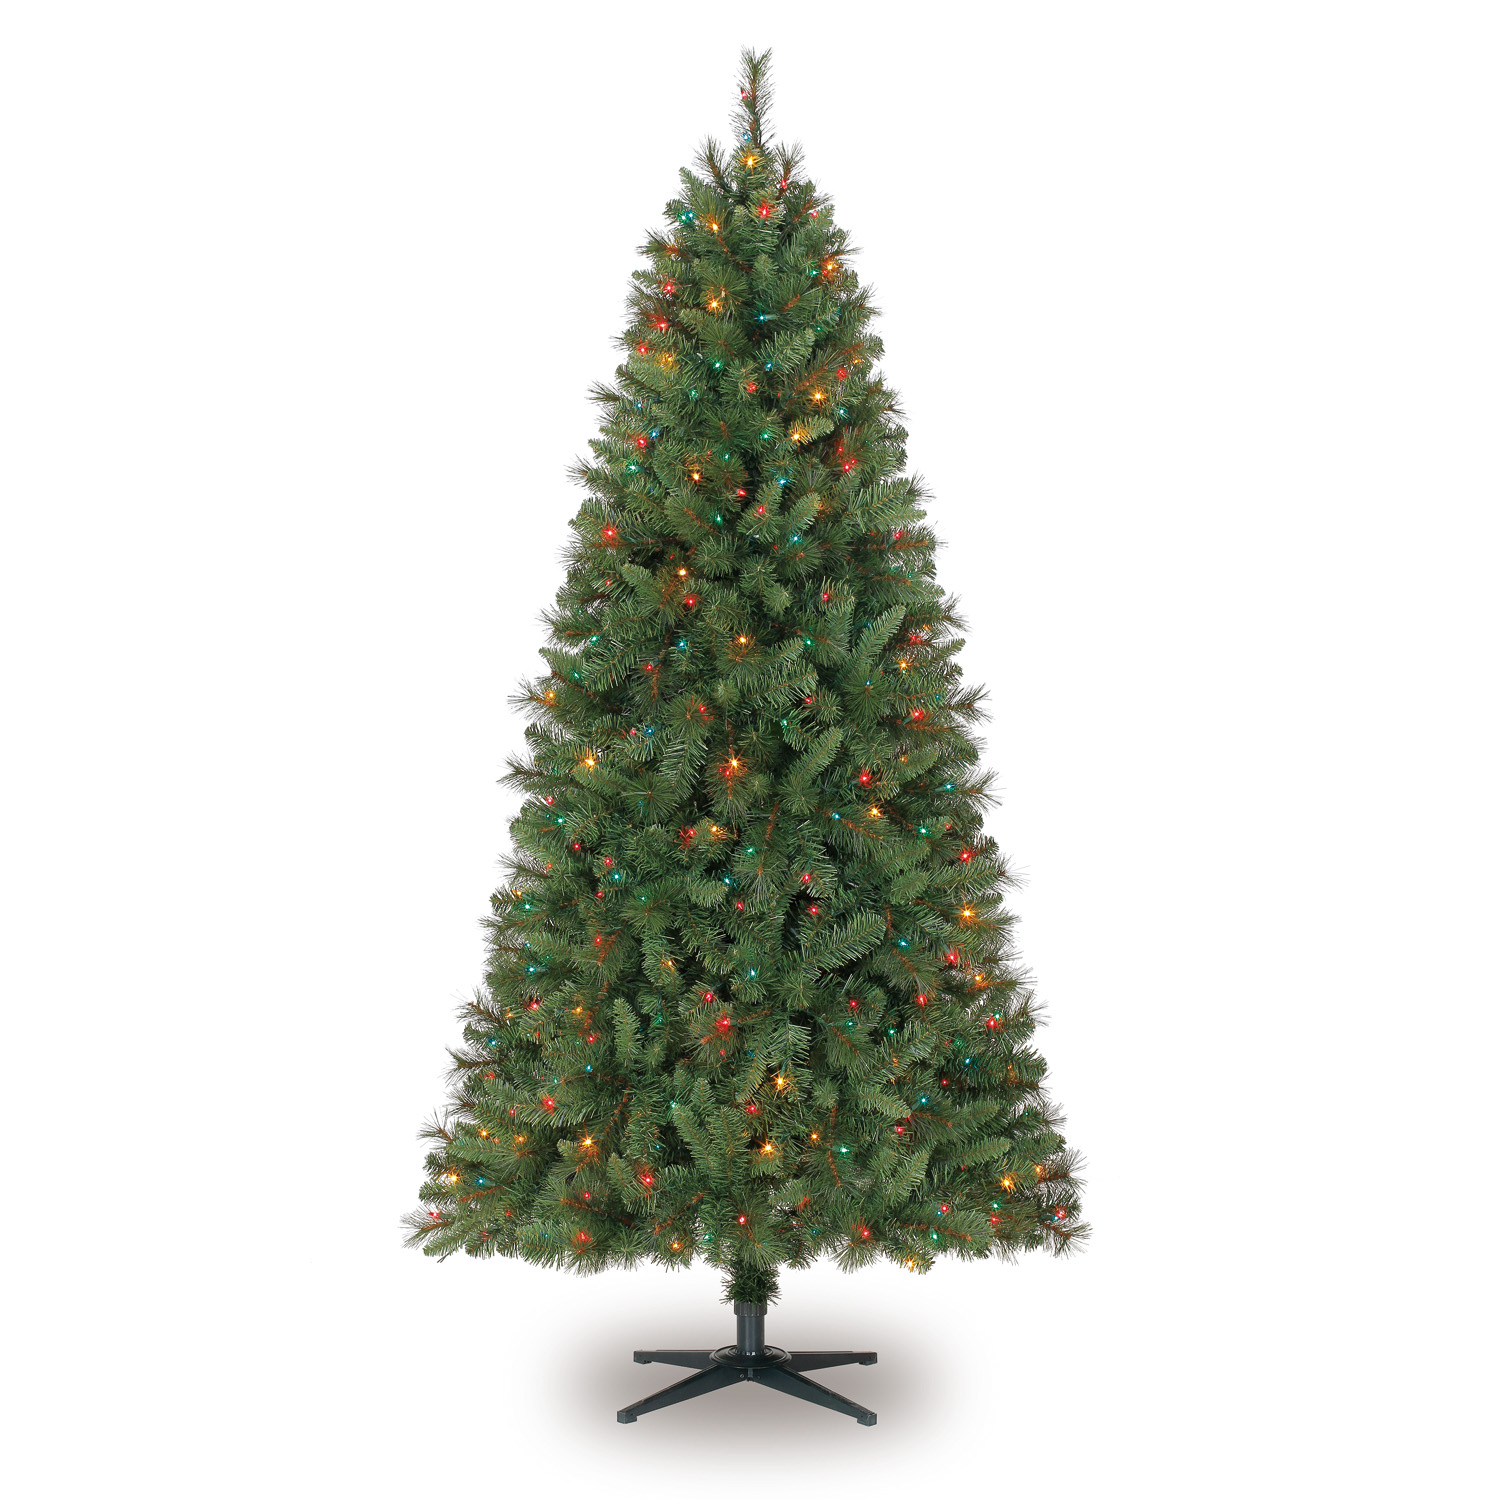 7 Ft. Pre-Lit Green Willow Pine Artificial Christmas Tree ...